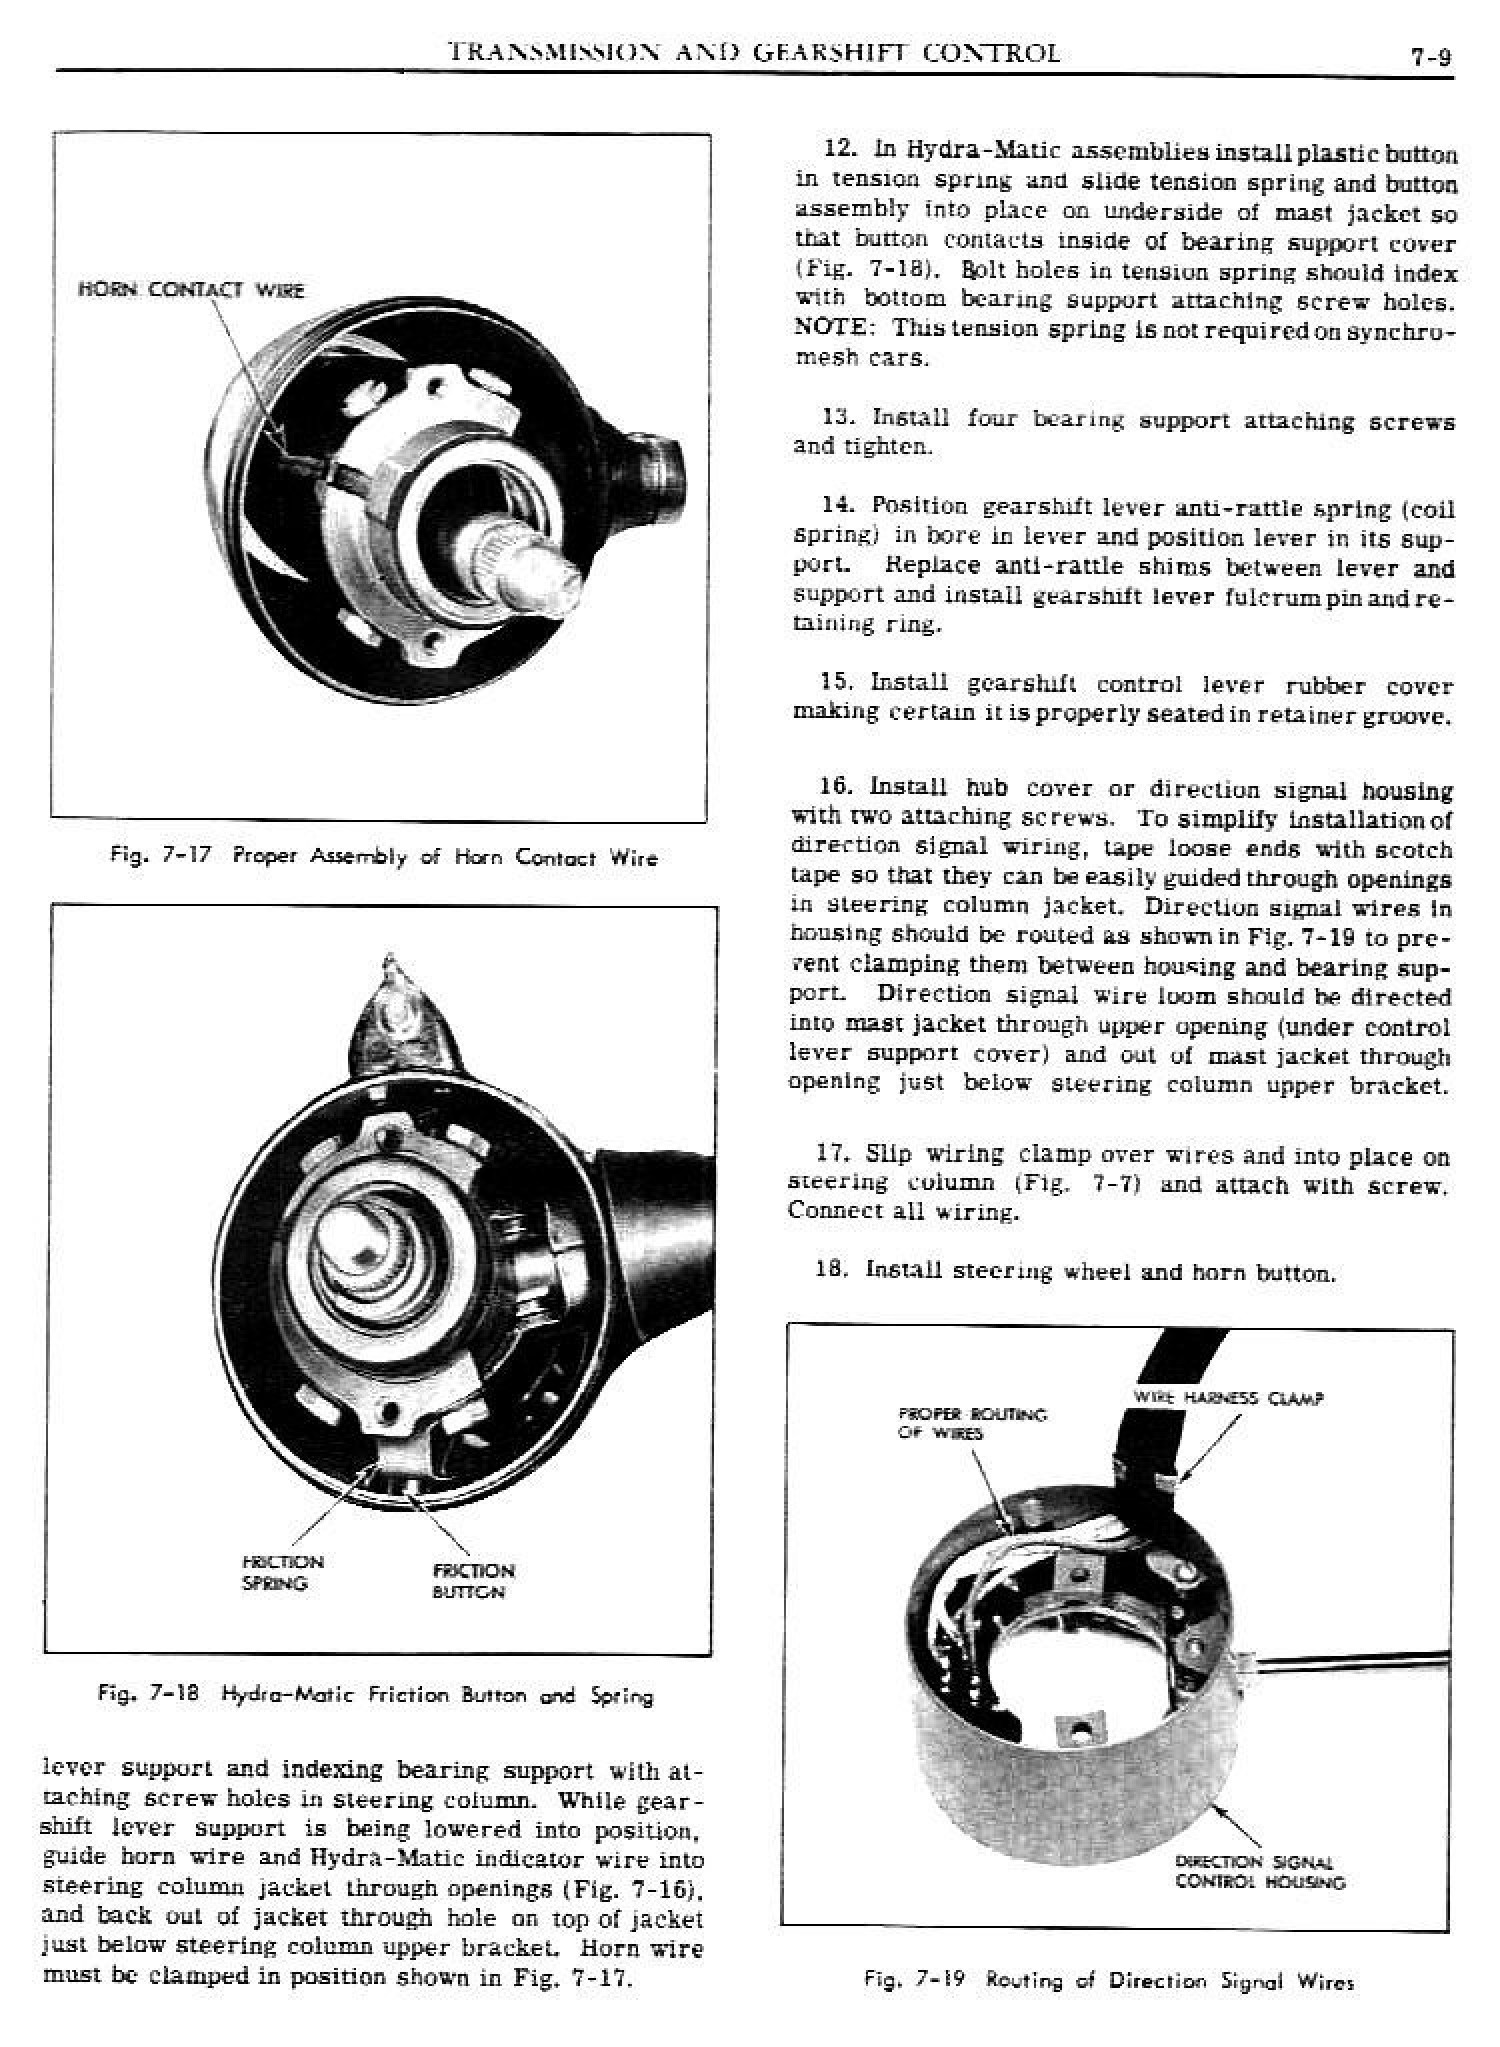 1949 Pontiac Shop Manual- Transmission and Gearshift